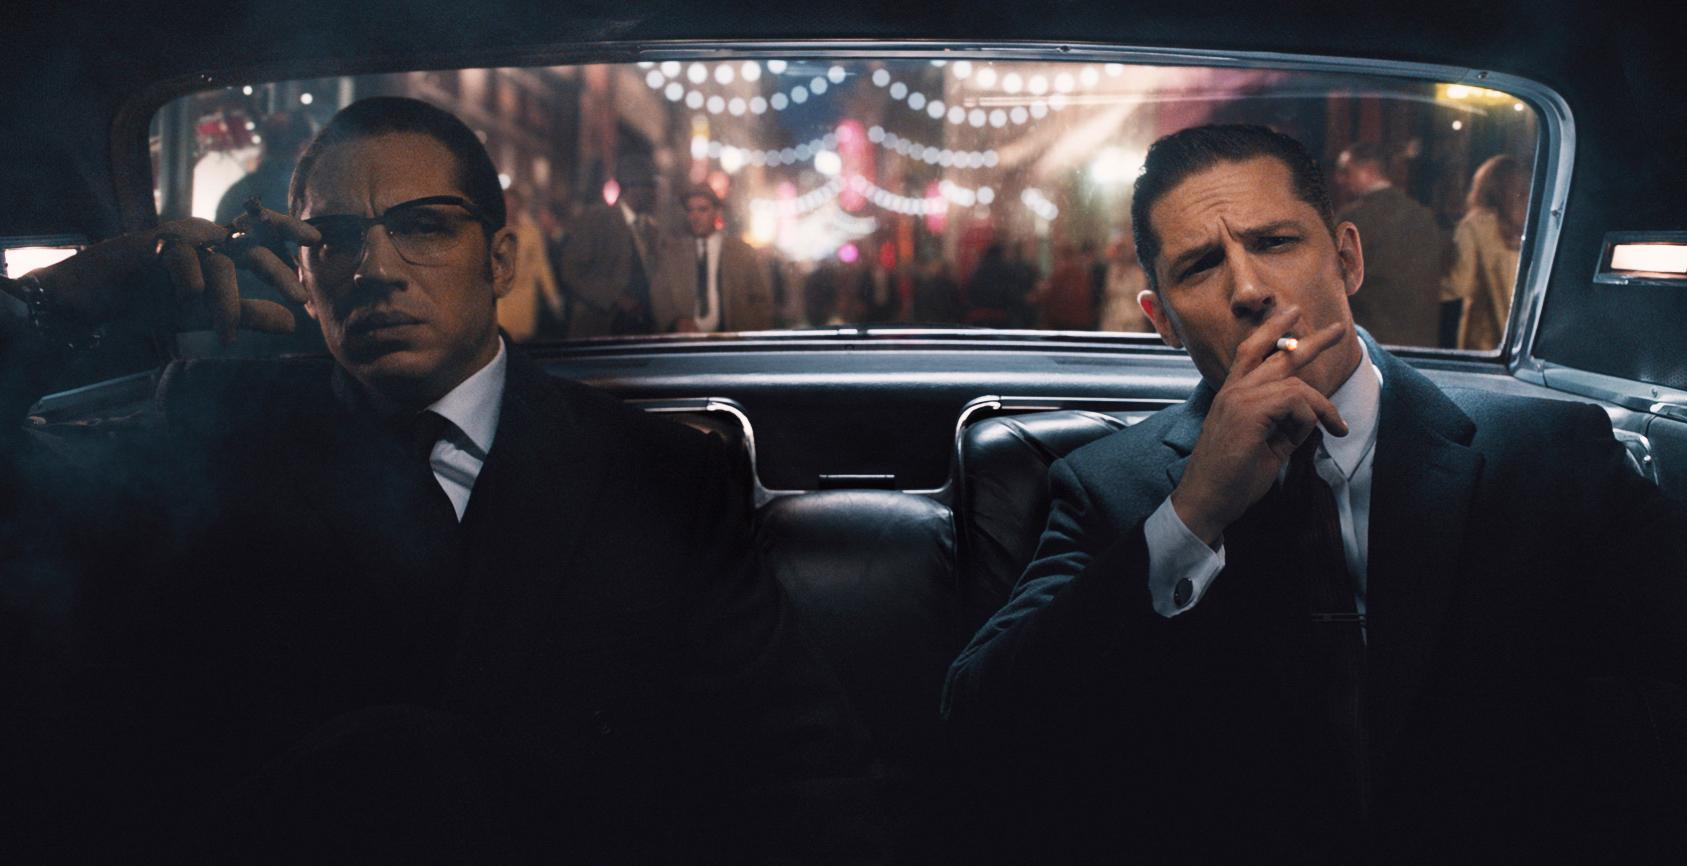 Hardy and Hardy in Legend. Image courtesy of Universal Pictures.